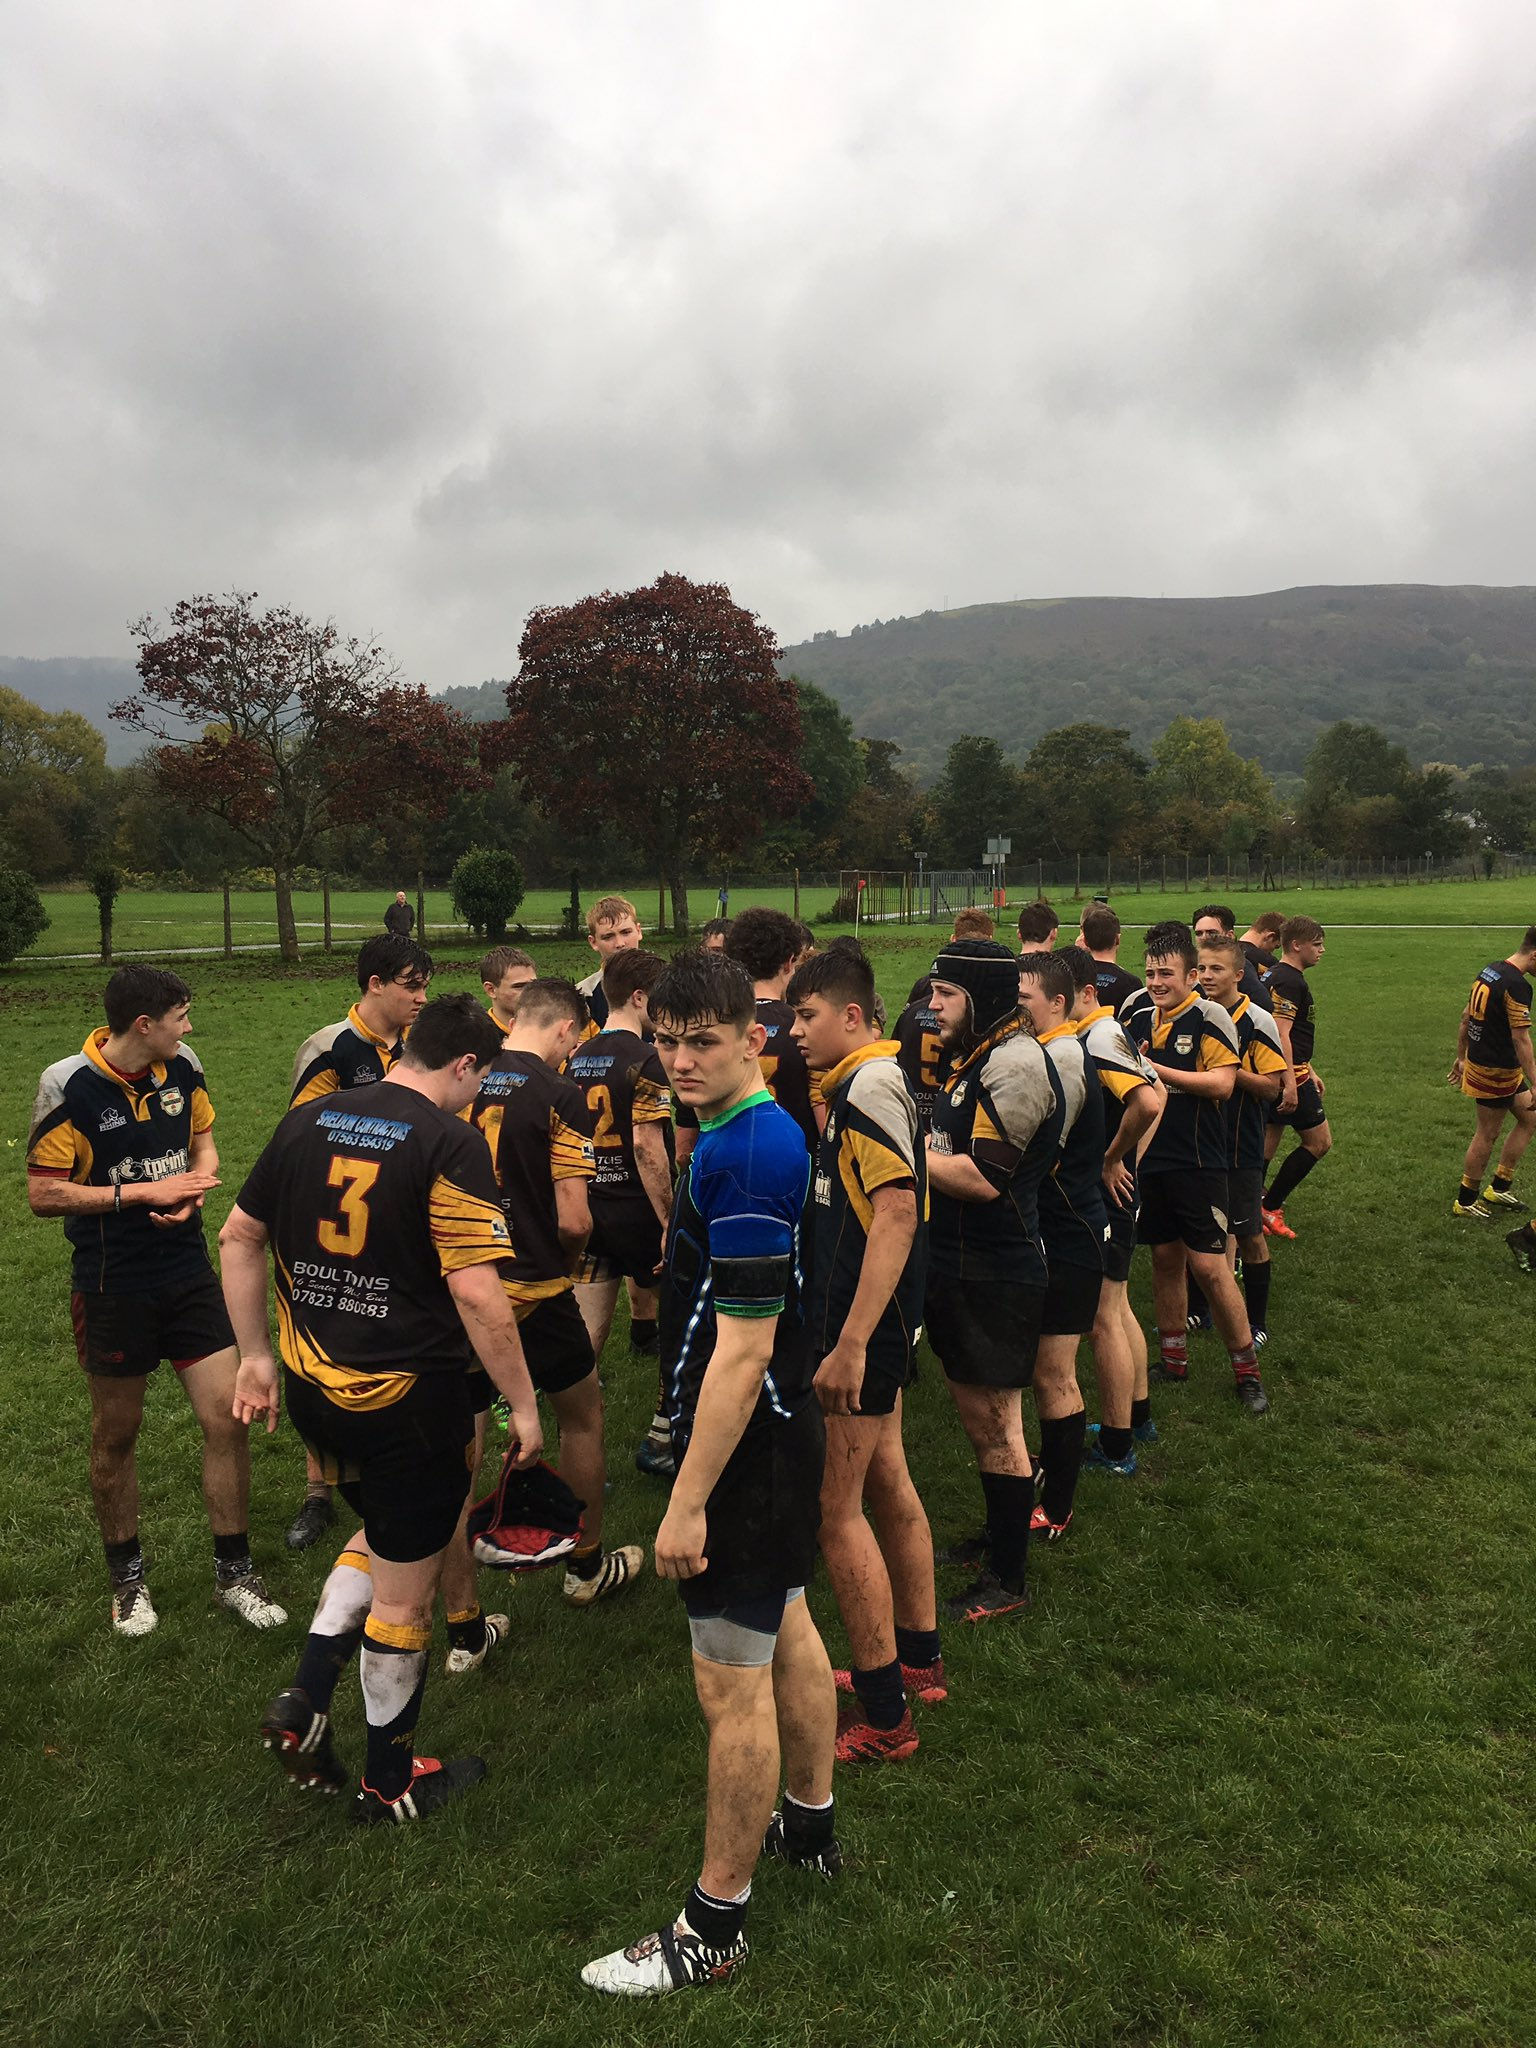 """Enjoyable game of rugby to be involved in this afternoon. 38-7 winners against Ponty High/Hawthorn. Great rugby on display in poor weather."""